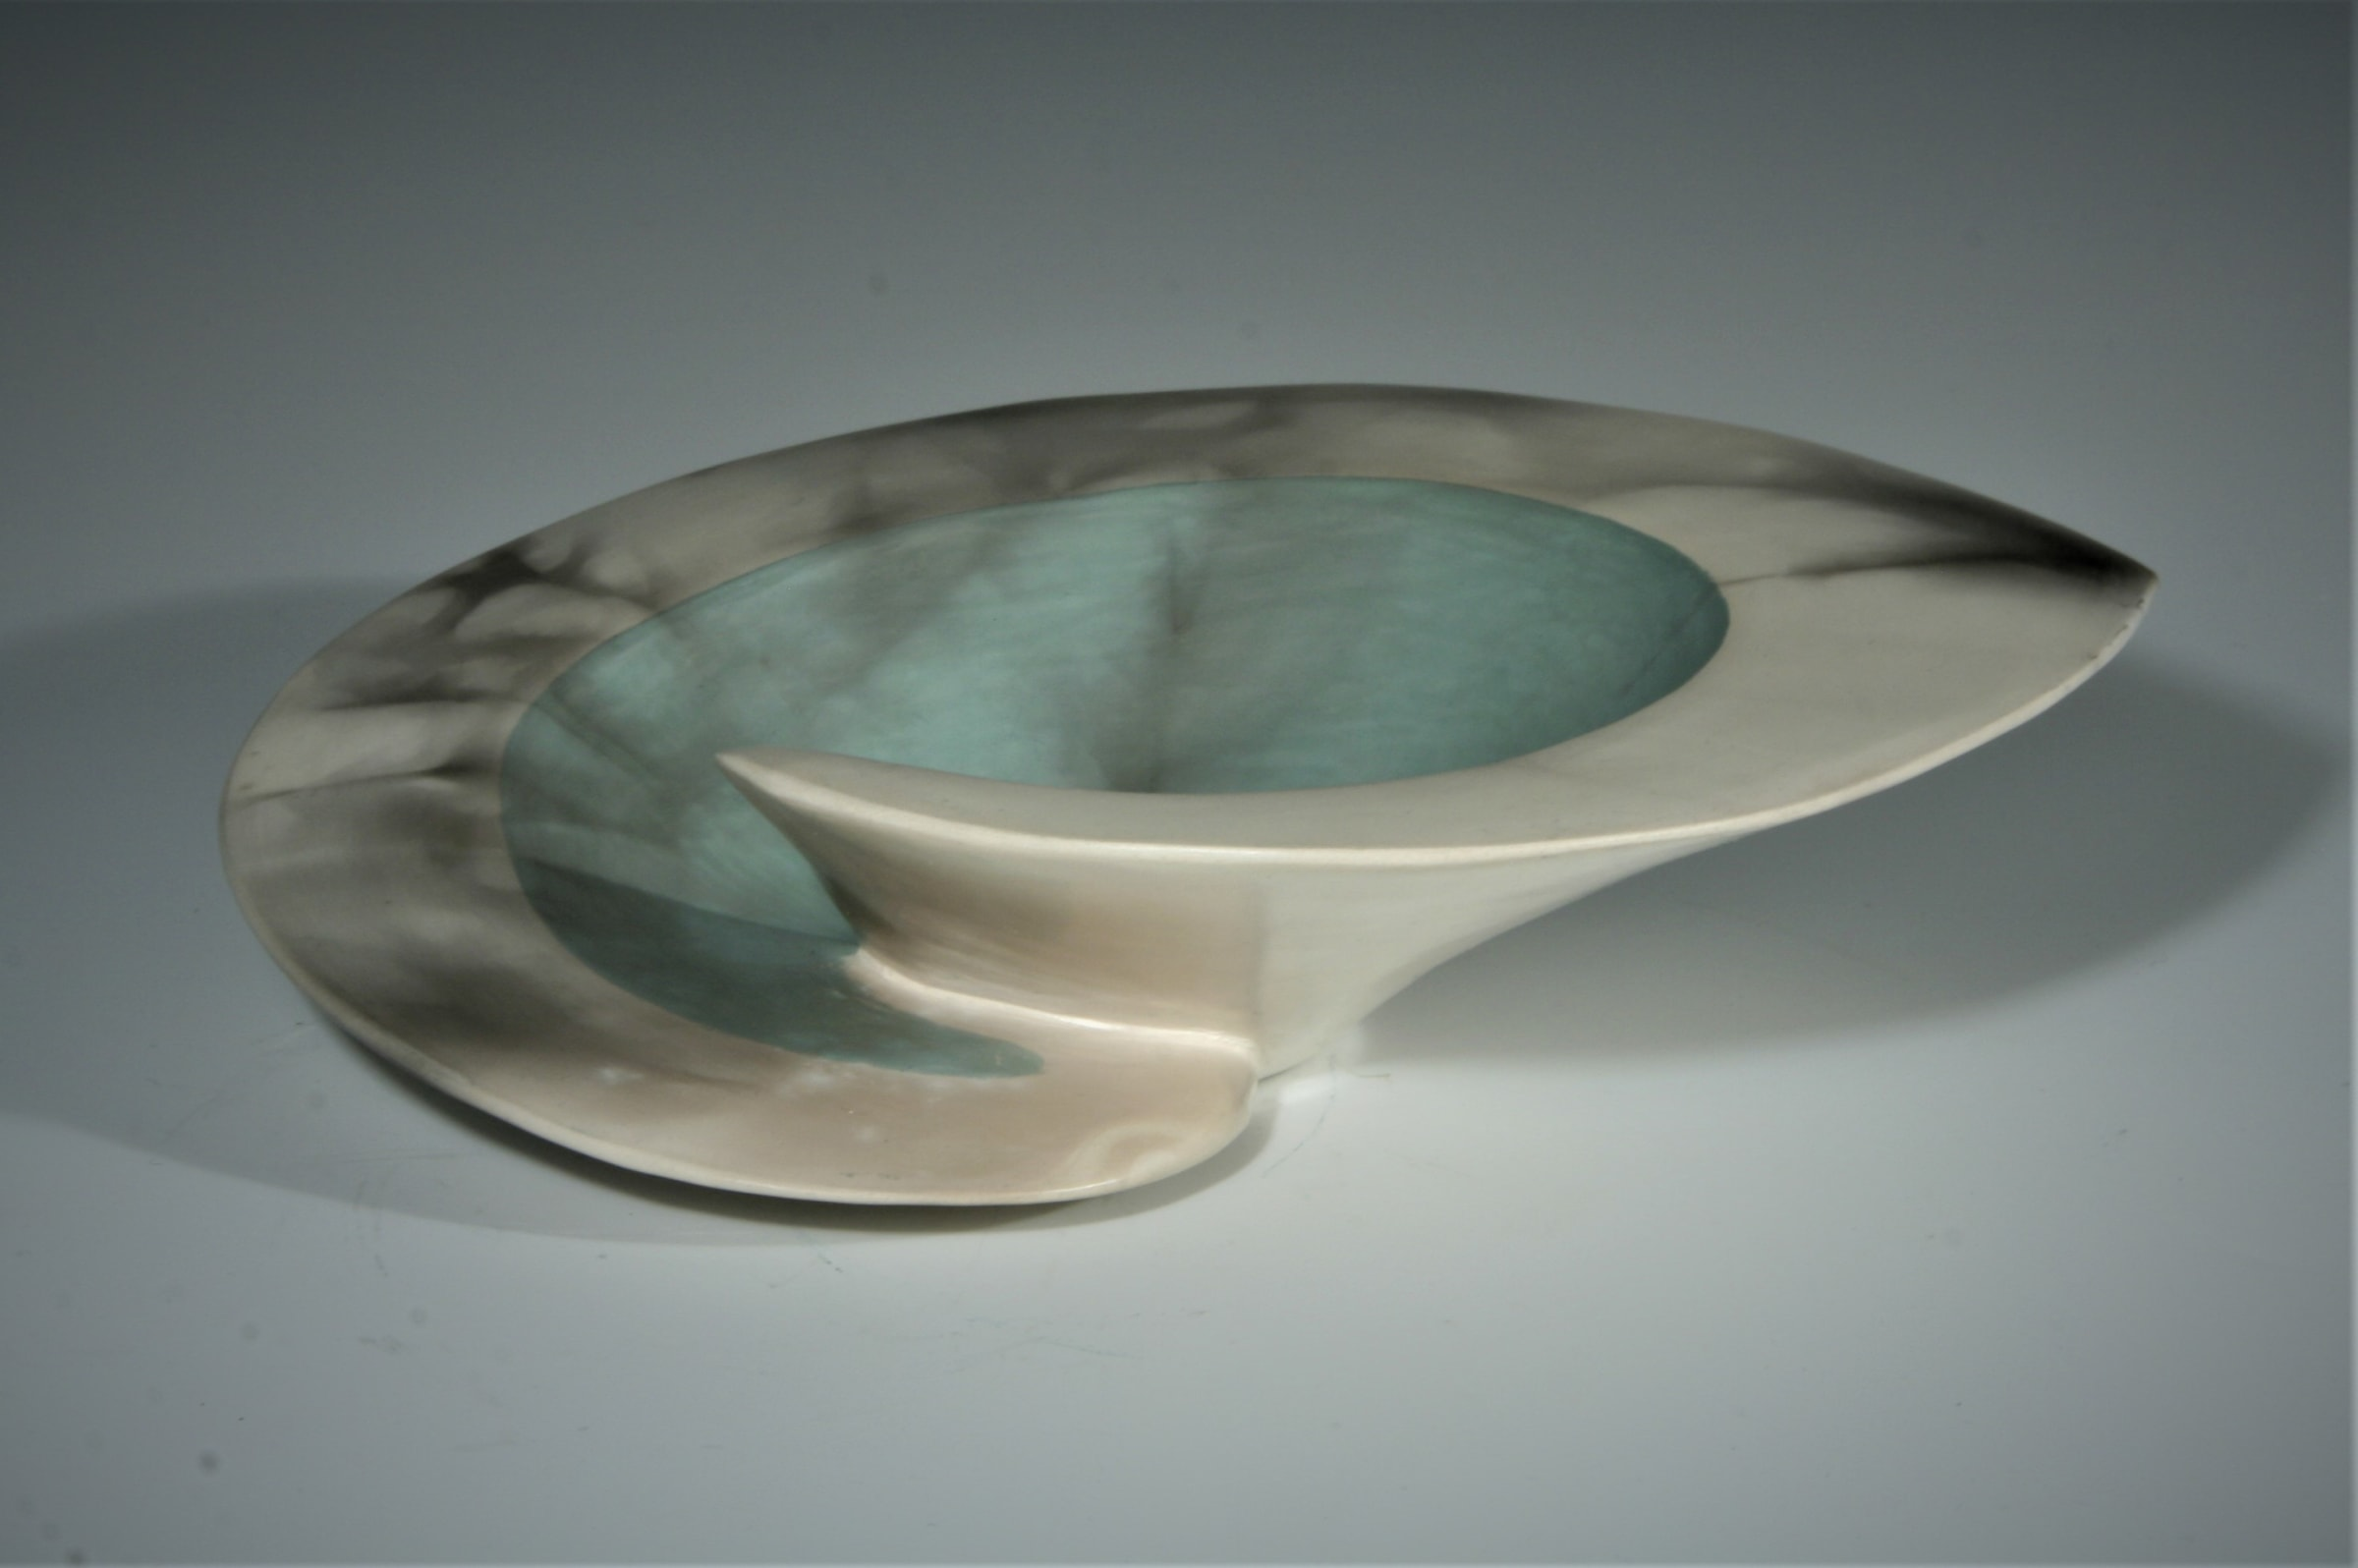 """<span class=""""link fancybox-details-link""""><a href=""""/artists/38-antonia-salmon/works/5696-antonia-salmon-green-dervish-bowl-iv-2018/"""">View Detail Page</a></span><div class=""""artist""""><strong>Antonia Salmon</strong></div> b. 1959 <div class=""""title""""><em>Green Dervish Bowl IV</em>, 2018</div> <div class=""""signed_and_dated"""">stamped AS</div> <div class=""""medium"""">Ceramic</div><div class=""""copyright_line"""">£ 21 x 10 Months, OwnArt 0% APR</div>"""